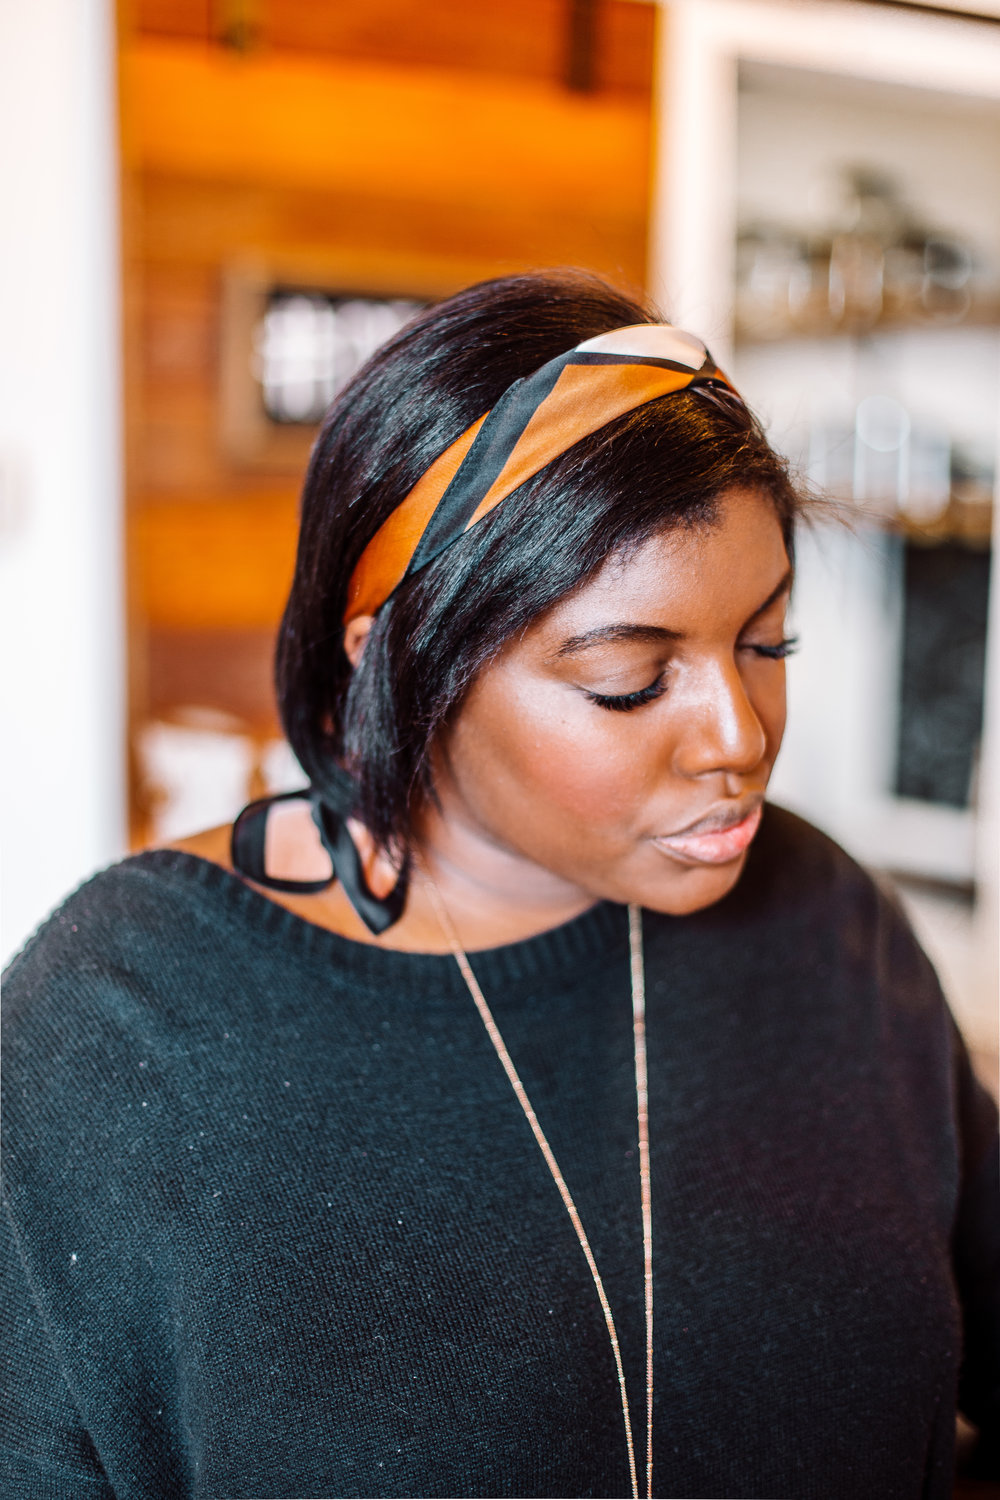 Tampa blogger Ayana Lage shows off lash extensions from local studio Lash Spa Studio.